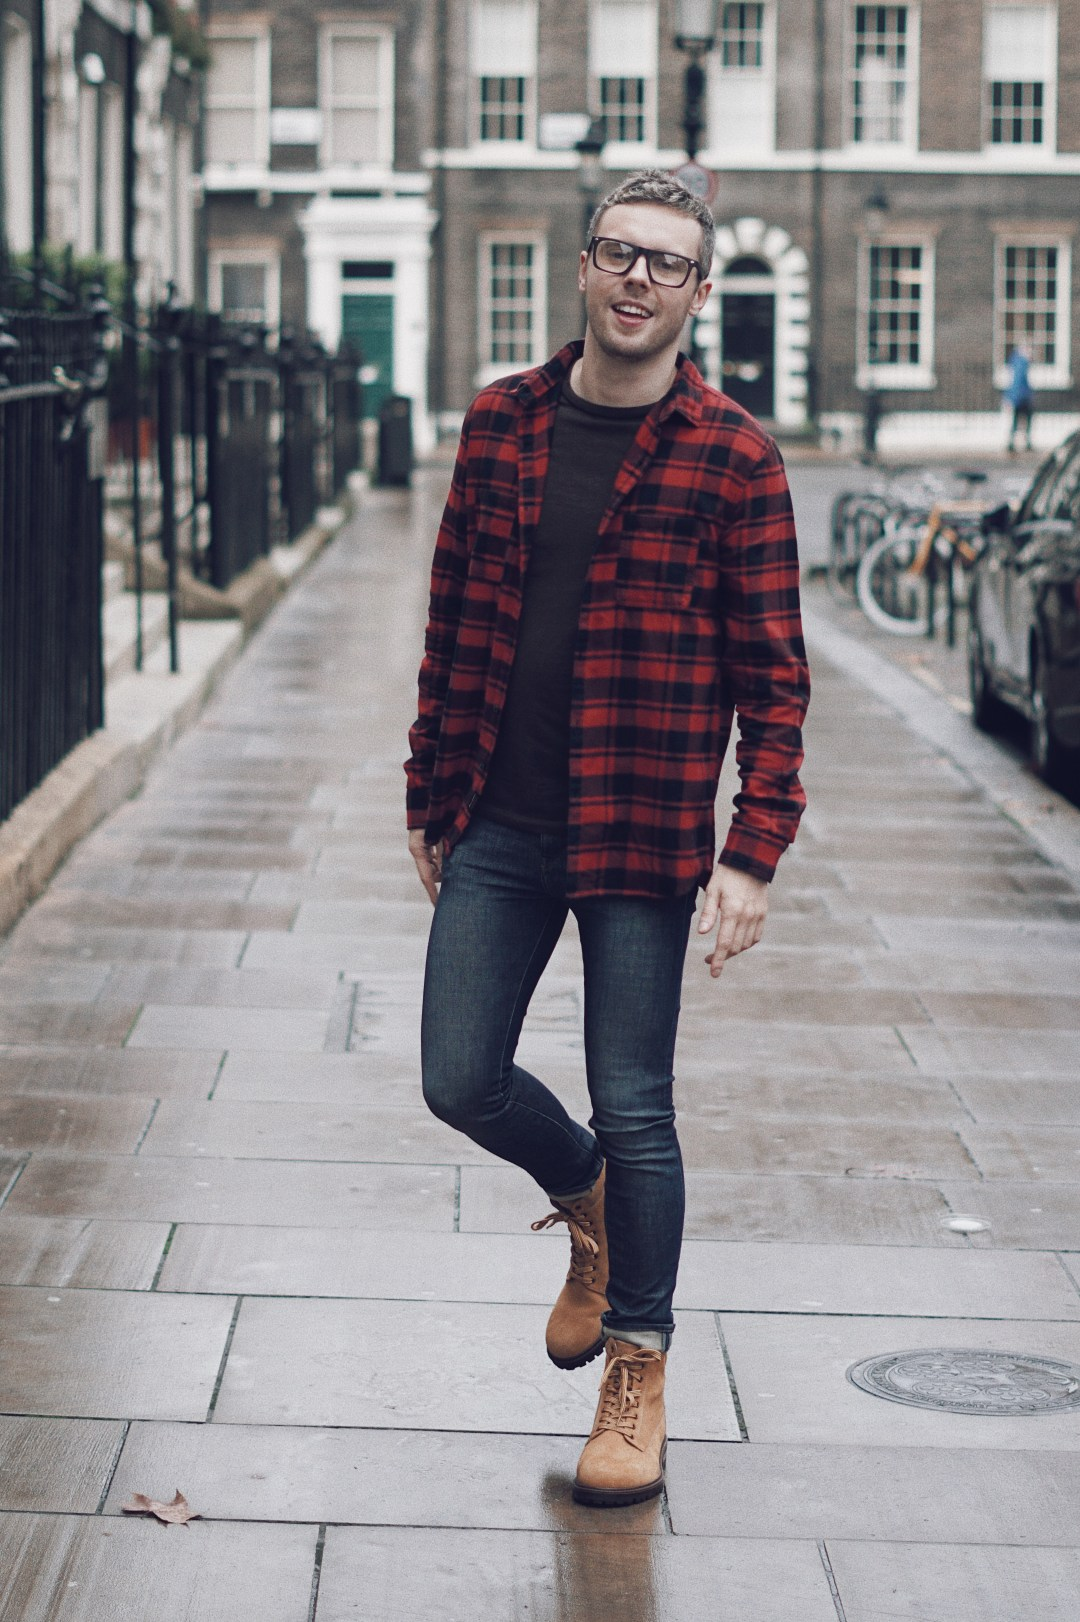 Boots from Zara | Buffalo Check Flannel Shirt and Skinny Jeans from H&M